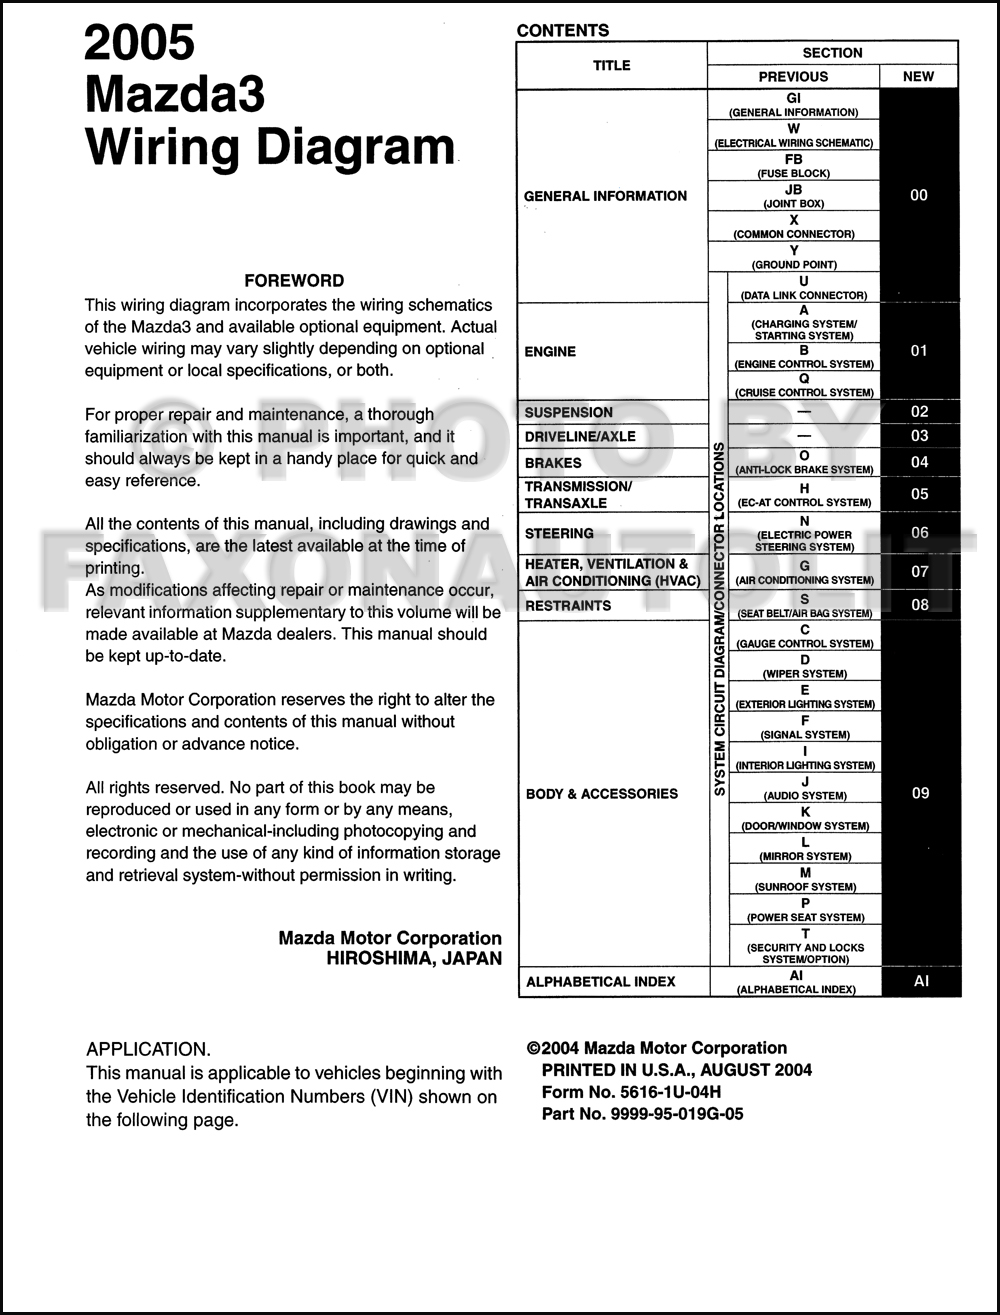 2005Mazda3OWD TOC 2005 mazda 3 wiring diagram manual original 2005 mazda 3 wiring diagram at virtualis.co